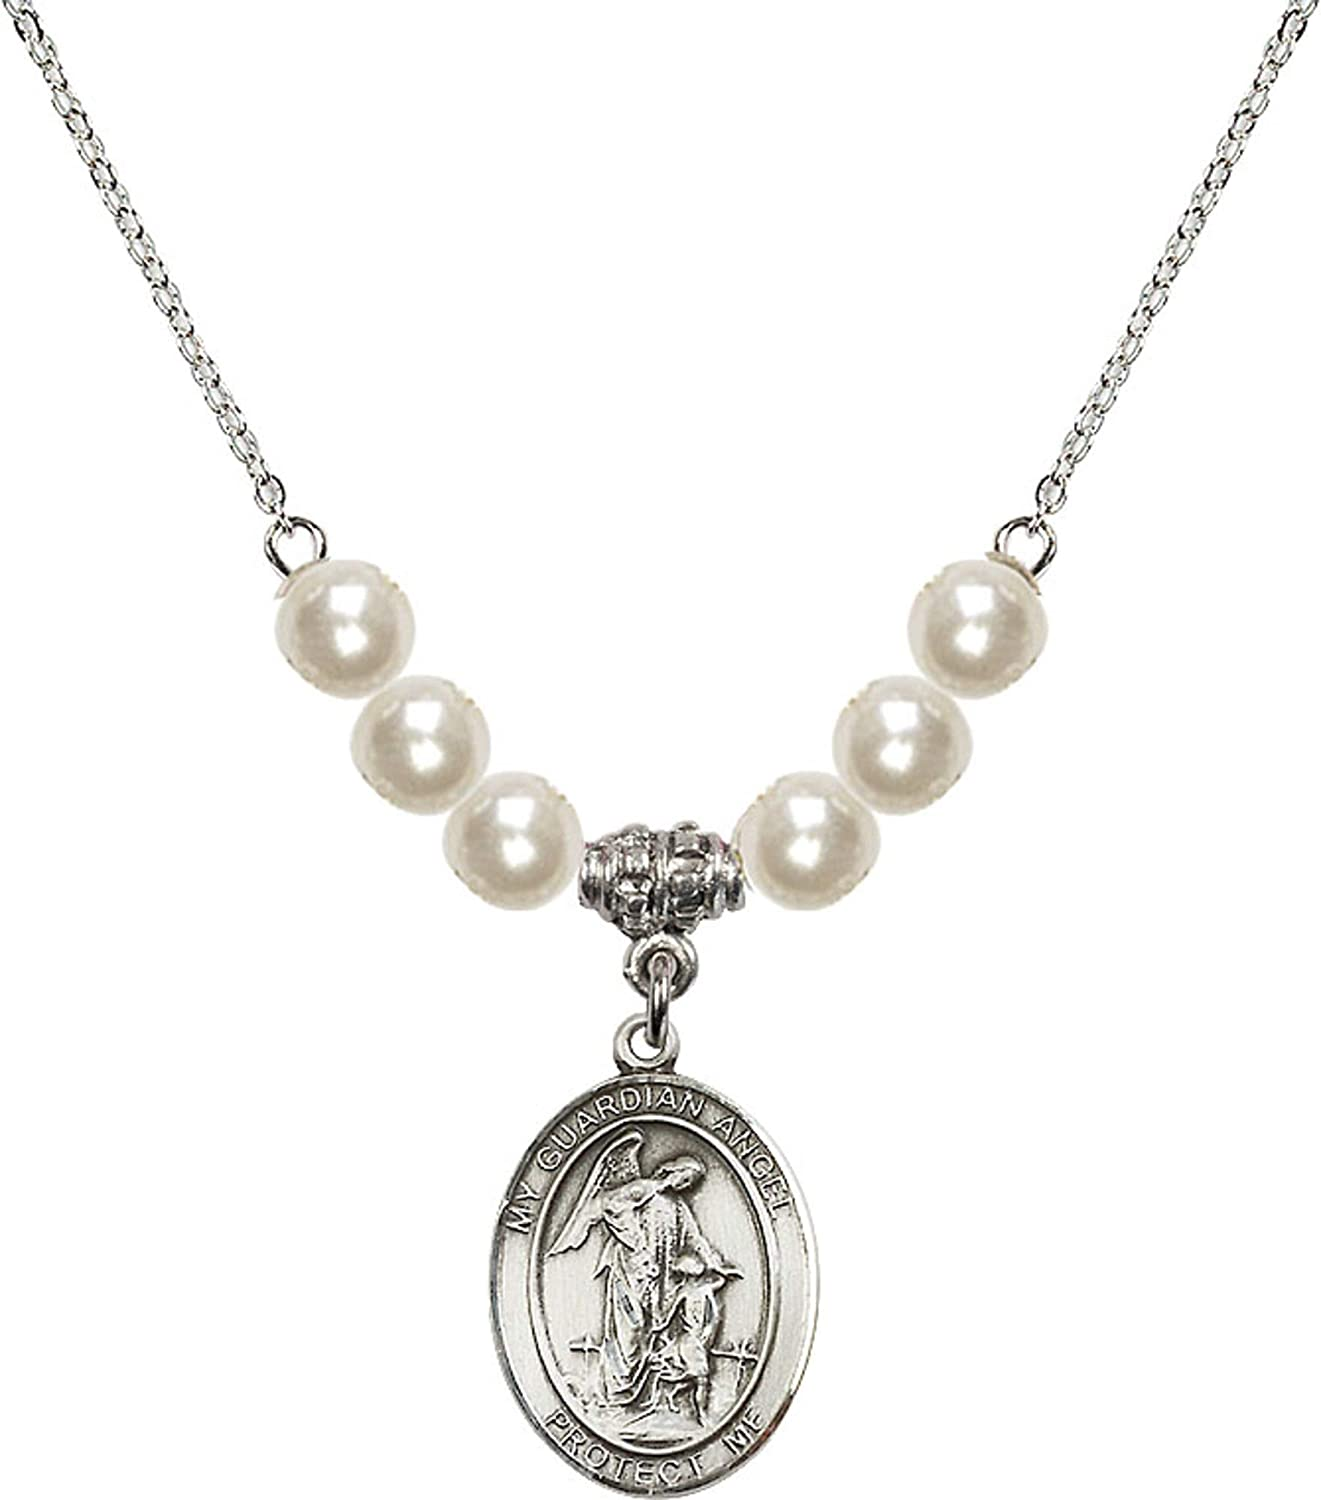 18-Inch Rhodium Plated Necklace with 6mm Faux-Pearl Beads and Sterling Silver Guardian Angel w//Child Charm.